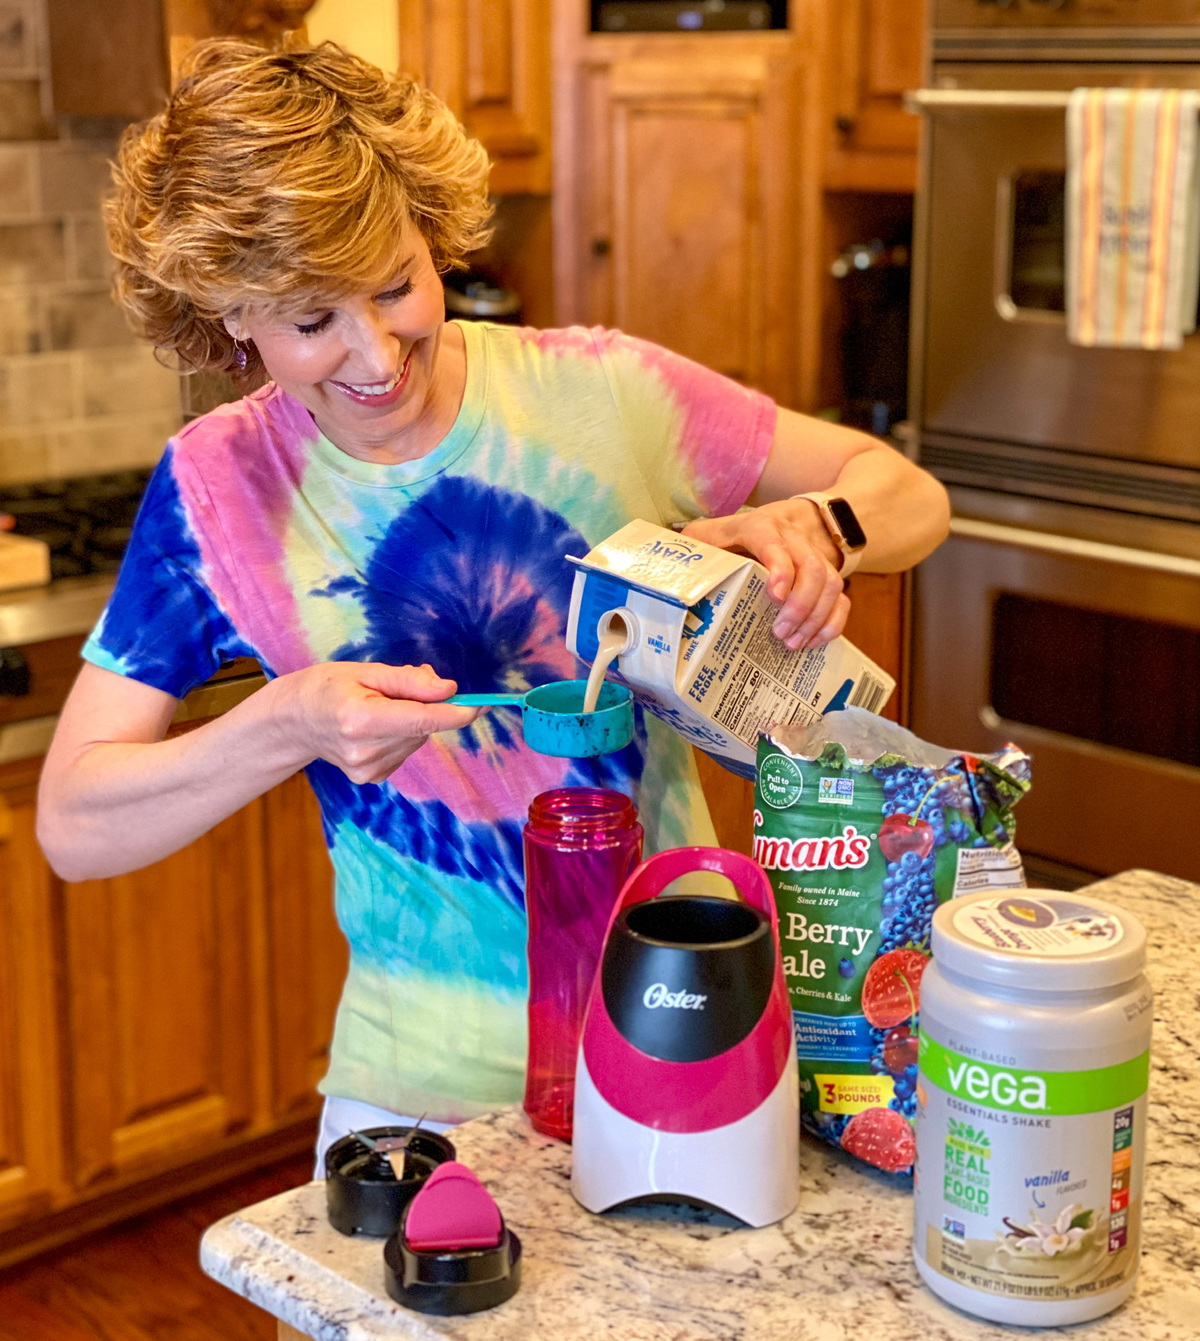 woman in tie dye shirt making a smoothie in kitchen